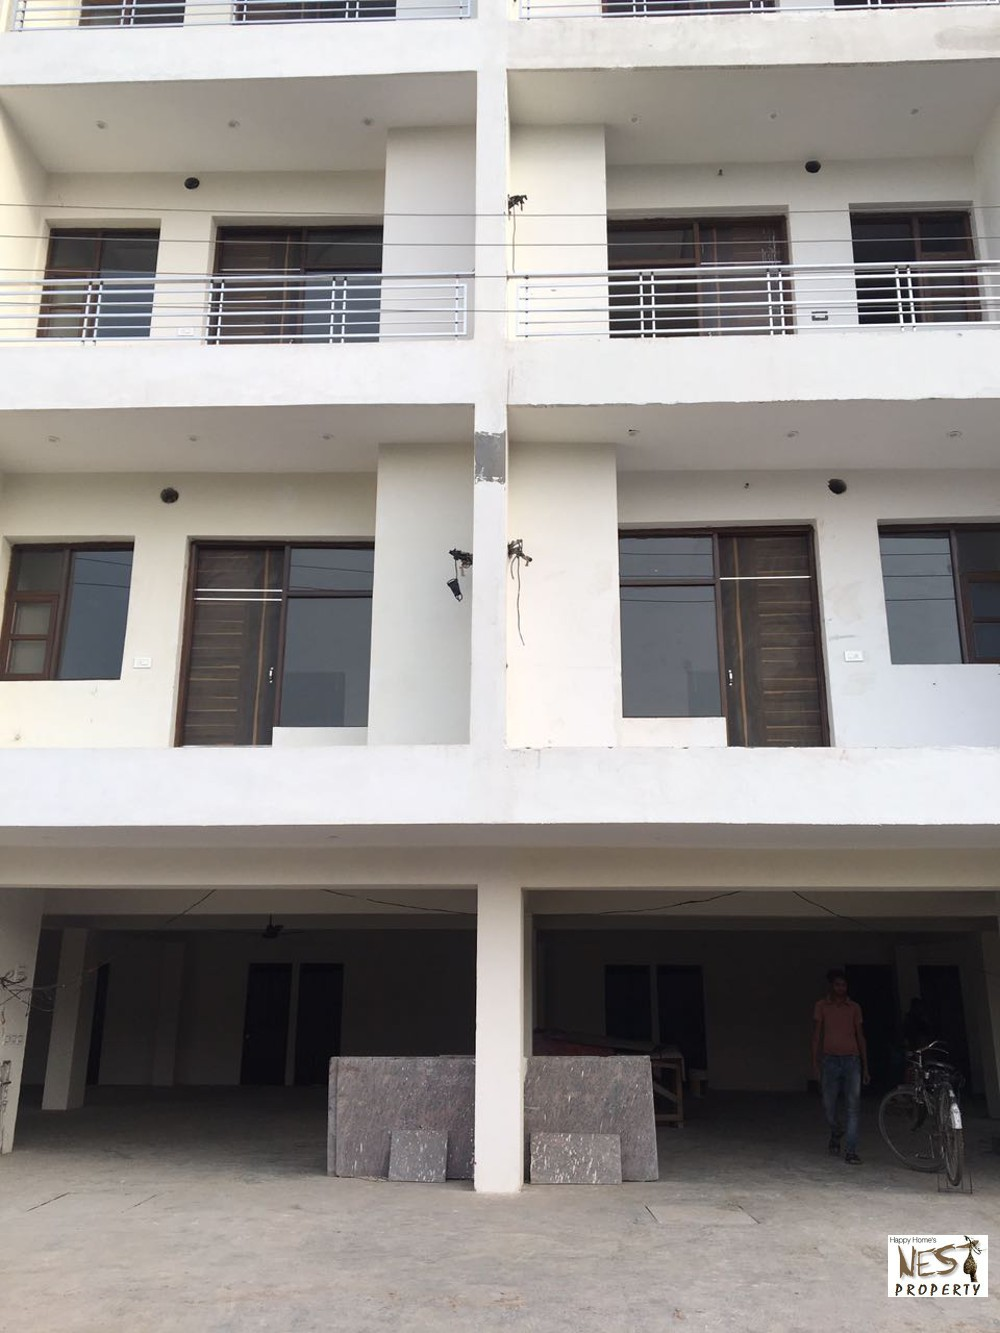 3 BHK Flats in Zirakpur, Ready To move apartment @ 27 lac In A-Class Homes,  Patiala Road Zirakpur, Call – 9888775612,9888777712